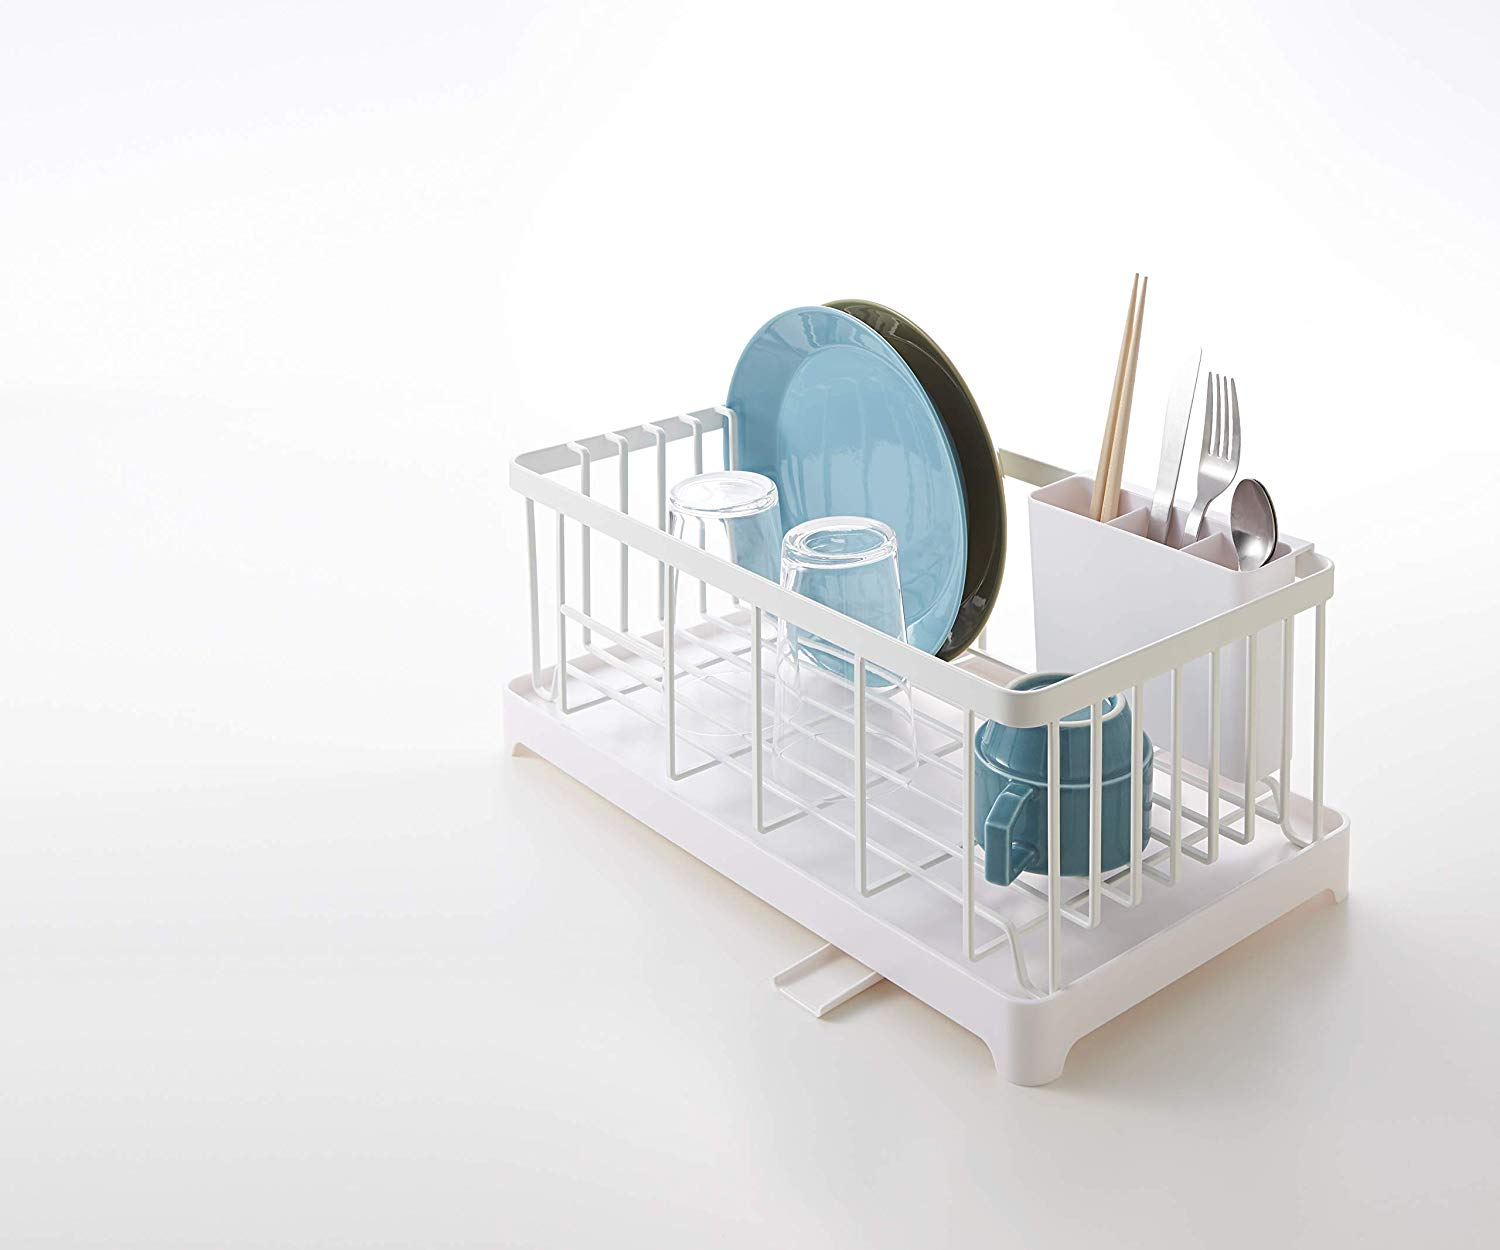 In Sink Dish Drying Rack Small Compact Drainer Tray Kitchen Wire Plate Storage